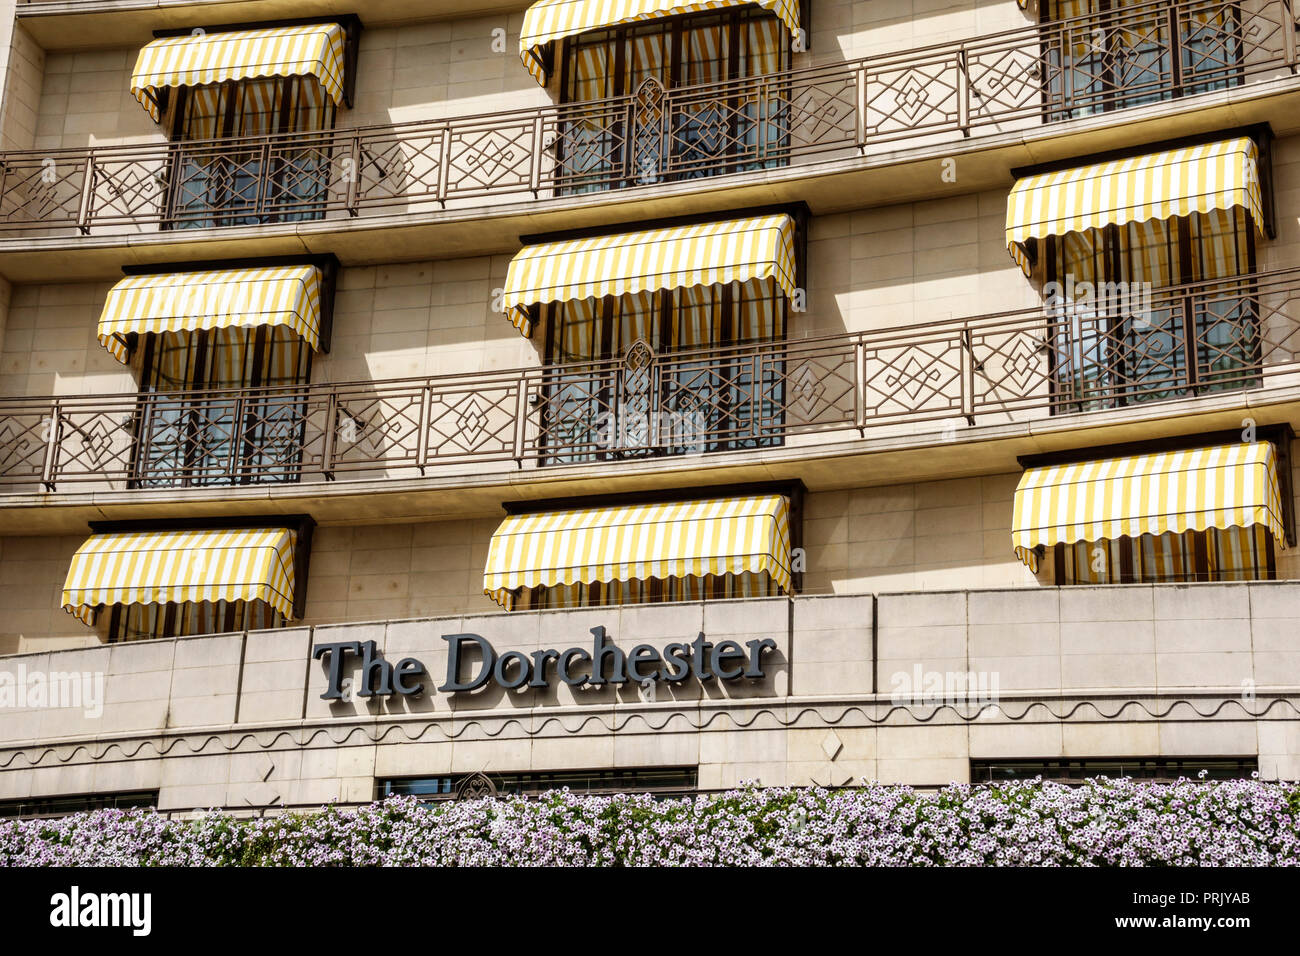 London England United Kingdom Great Britain West End City Westminster Mayfair Park Lane The Dorchester hotel luxury 5-star outside facade balconies aw - Stock Image